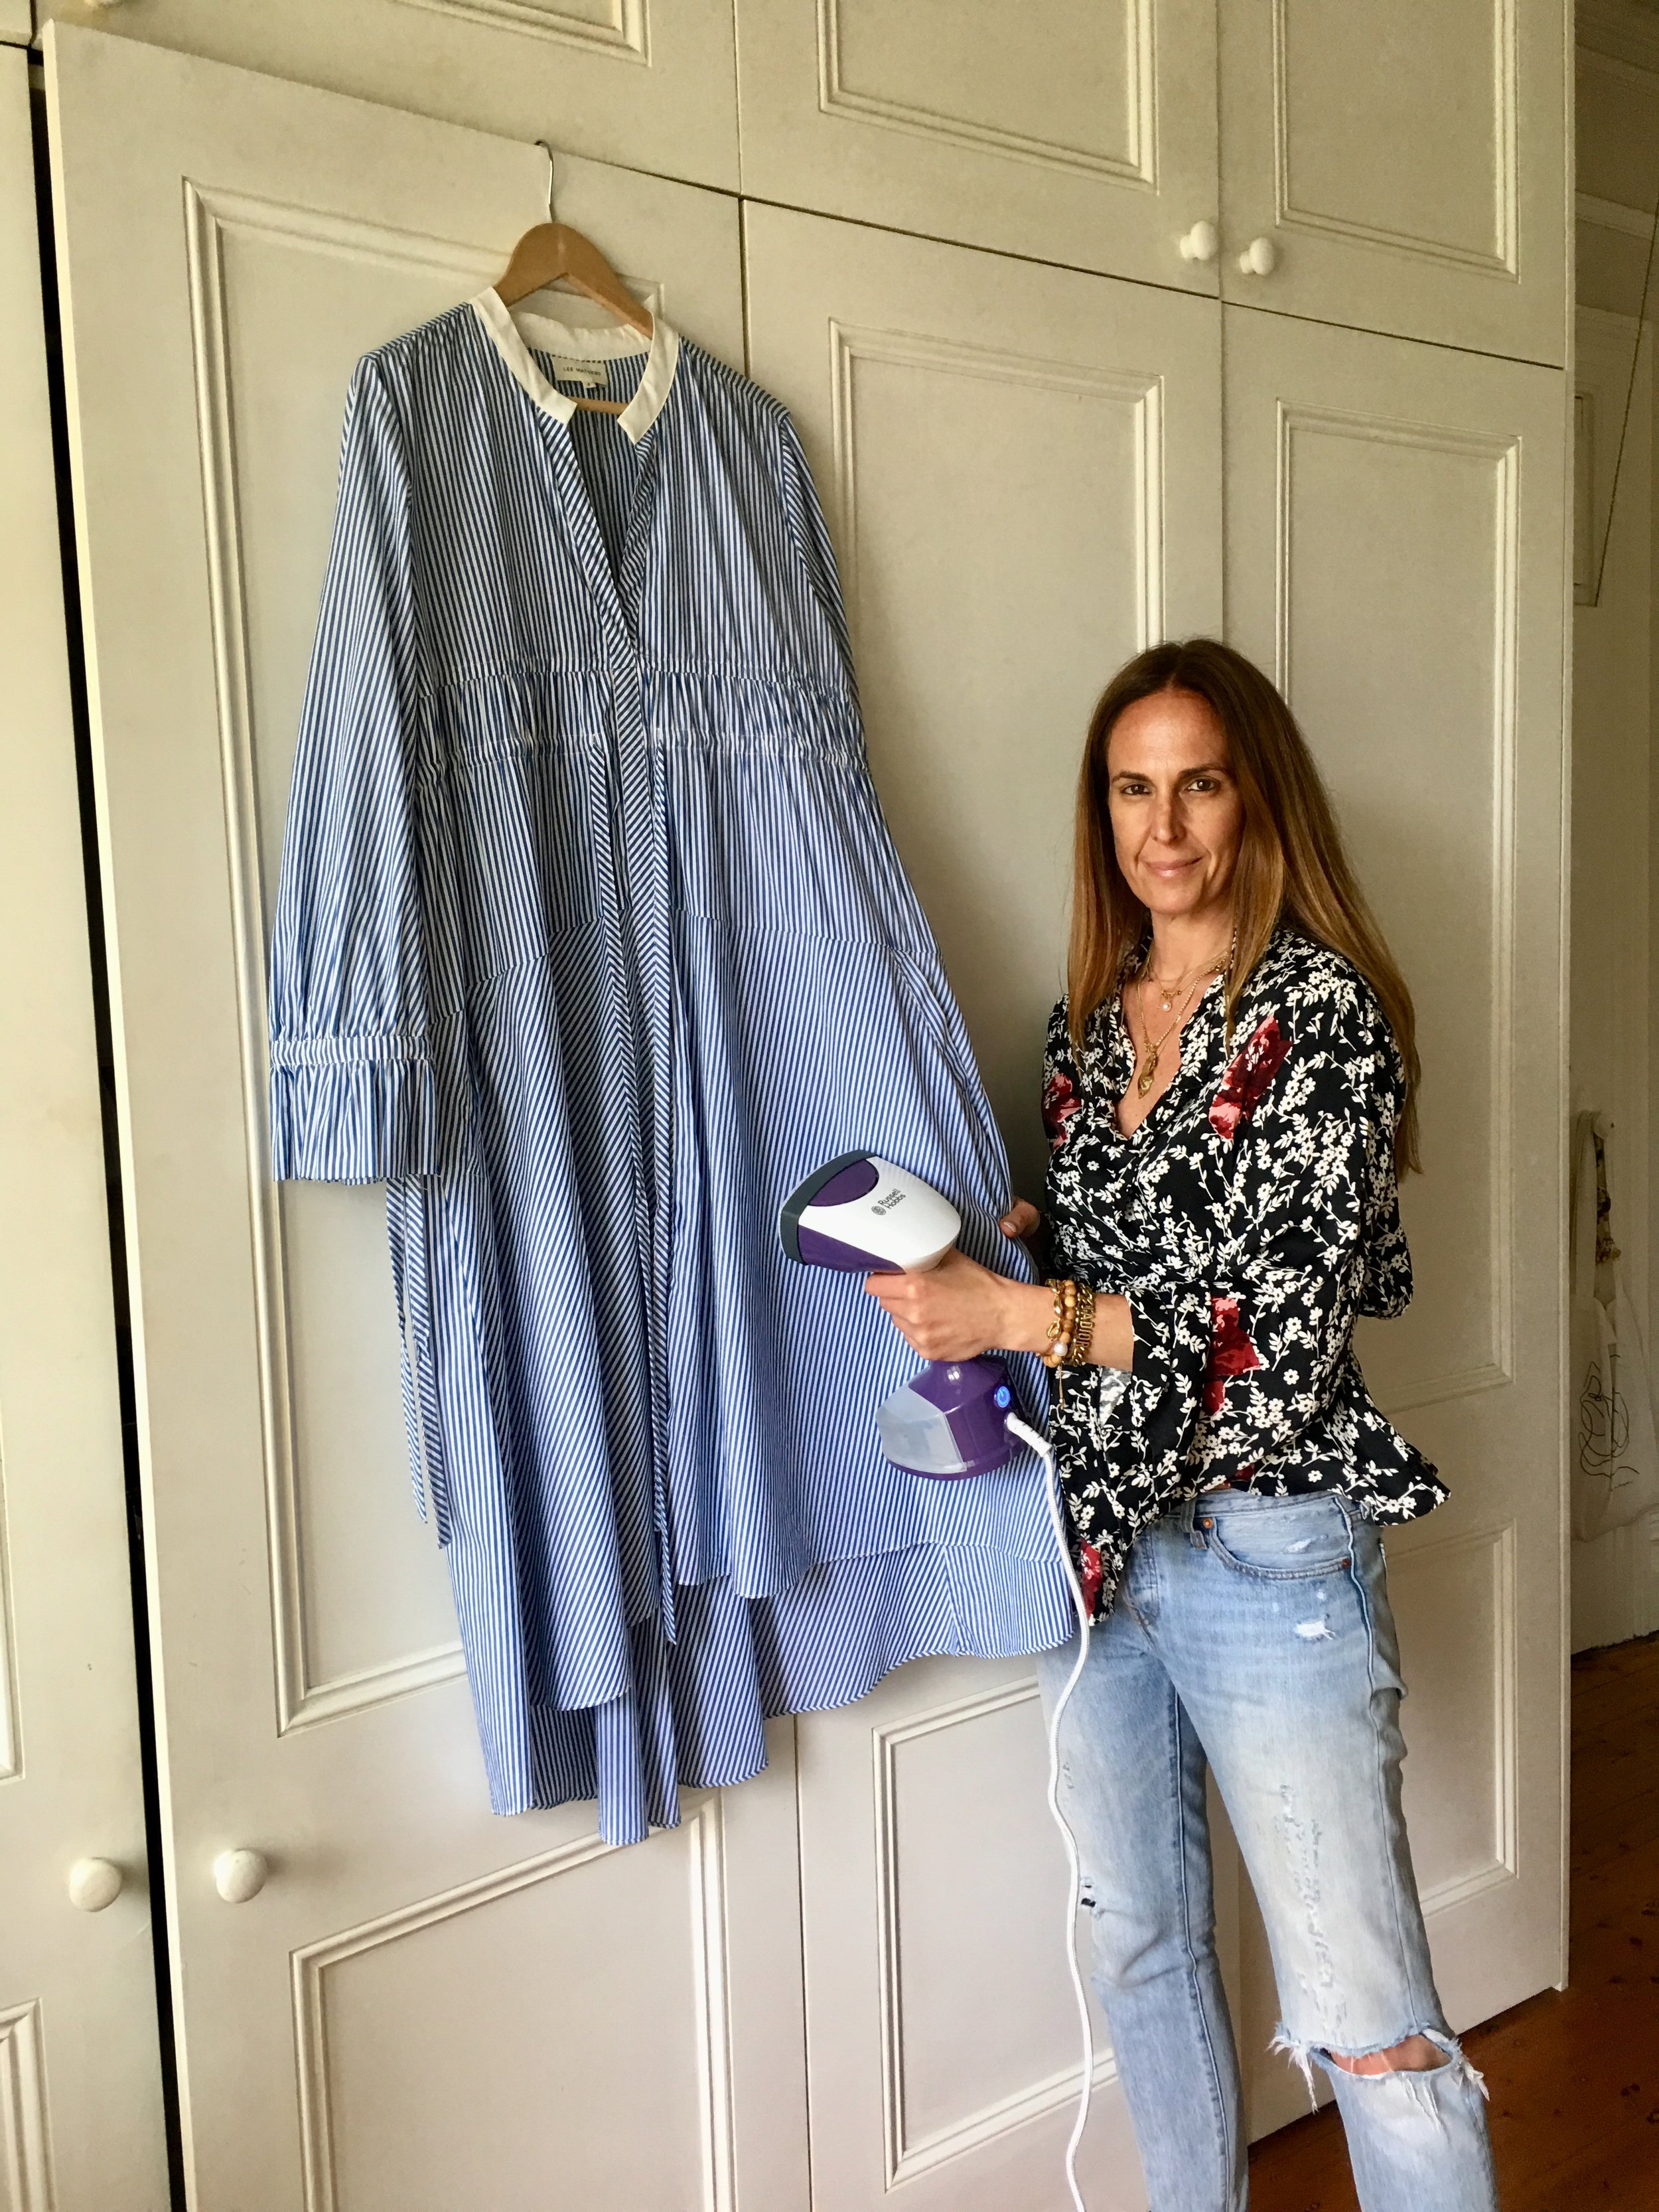 Steaming shirting or dresses